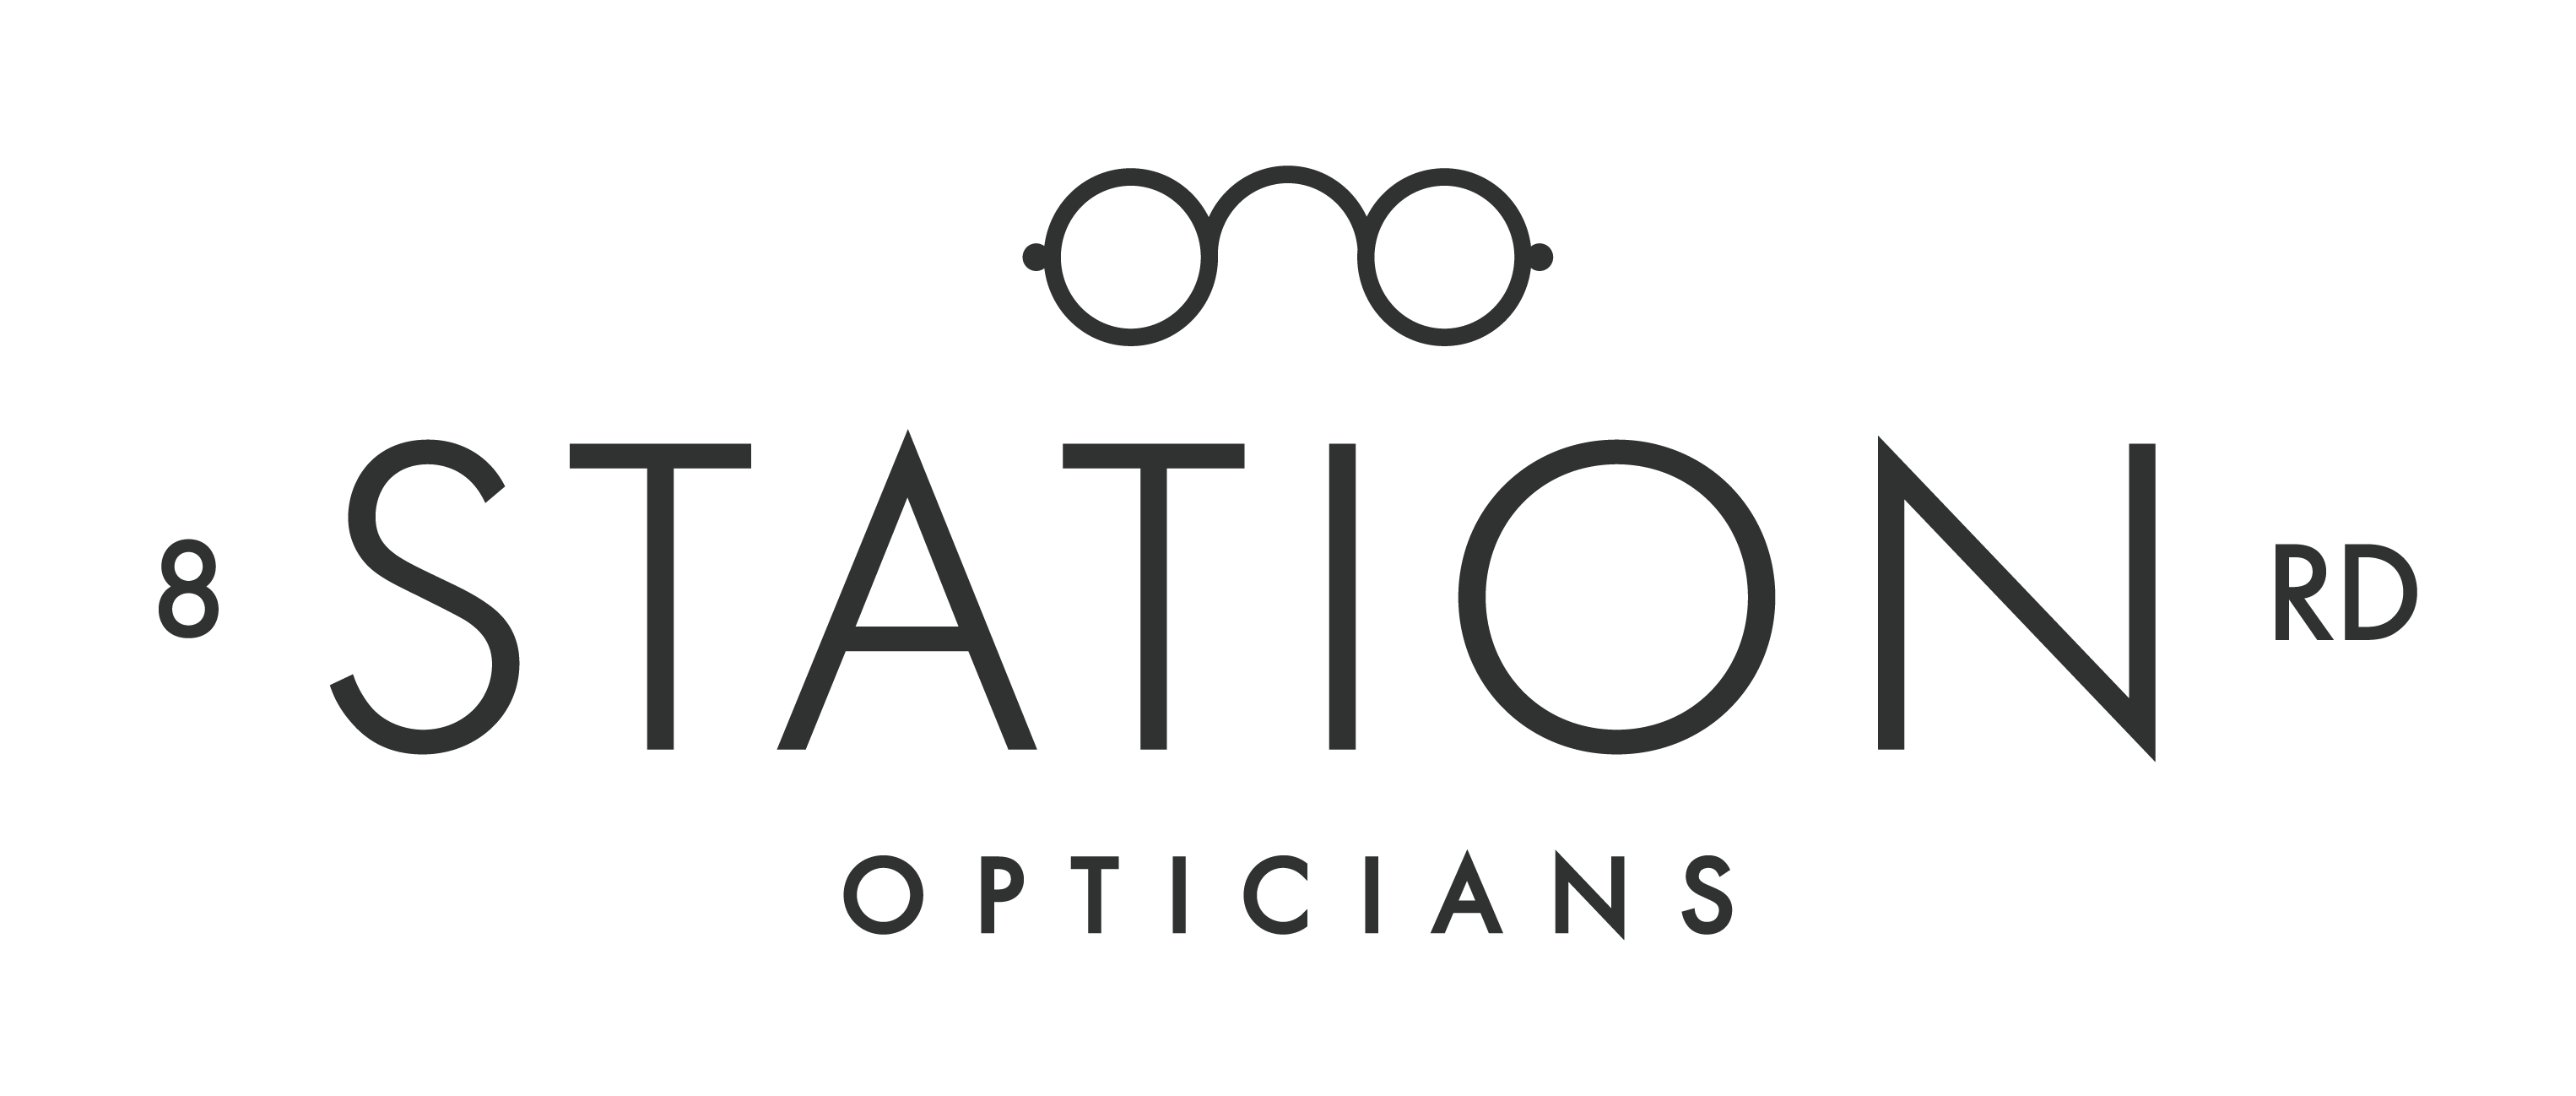 Station Road Opticians Logo